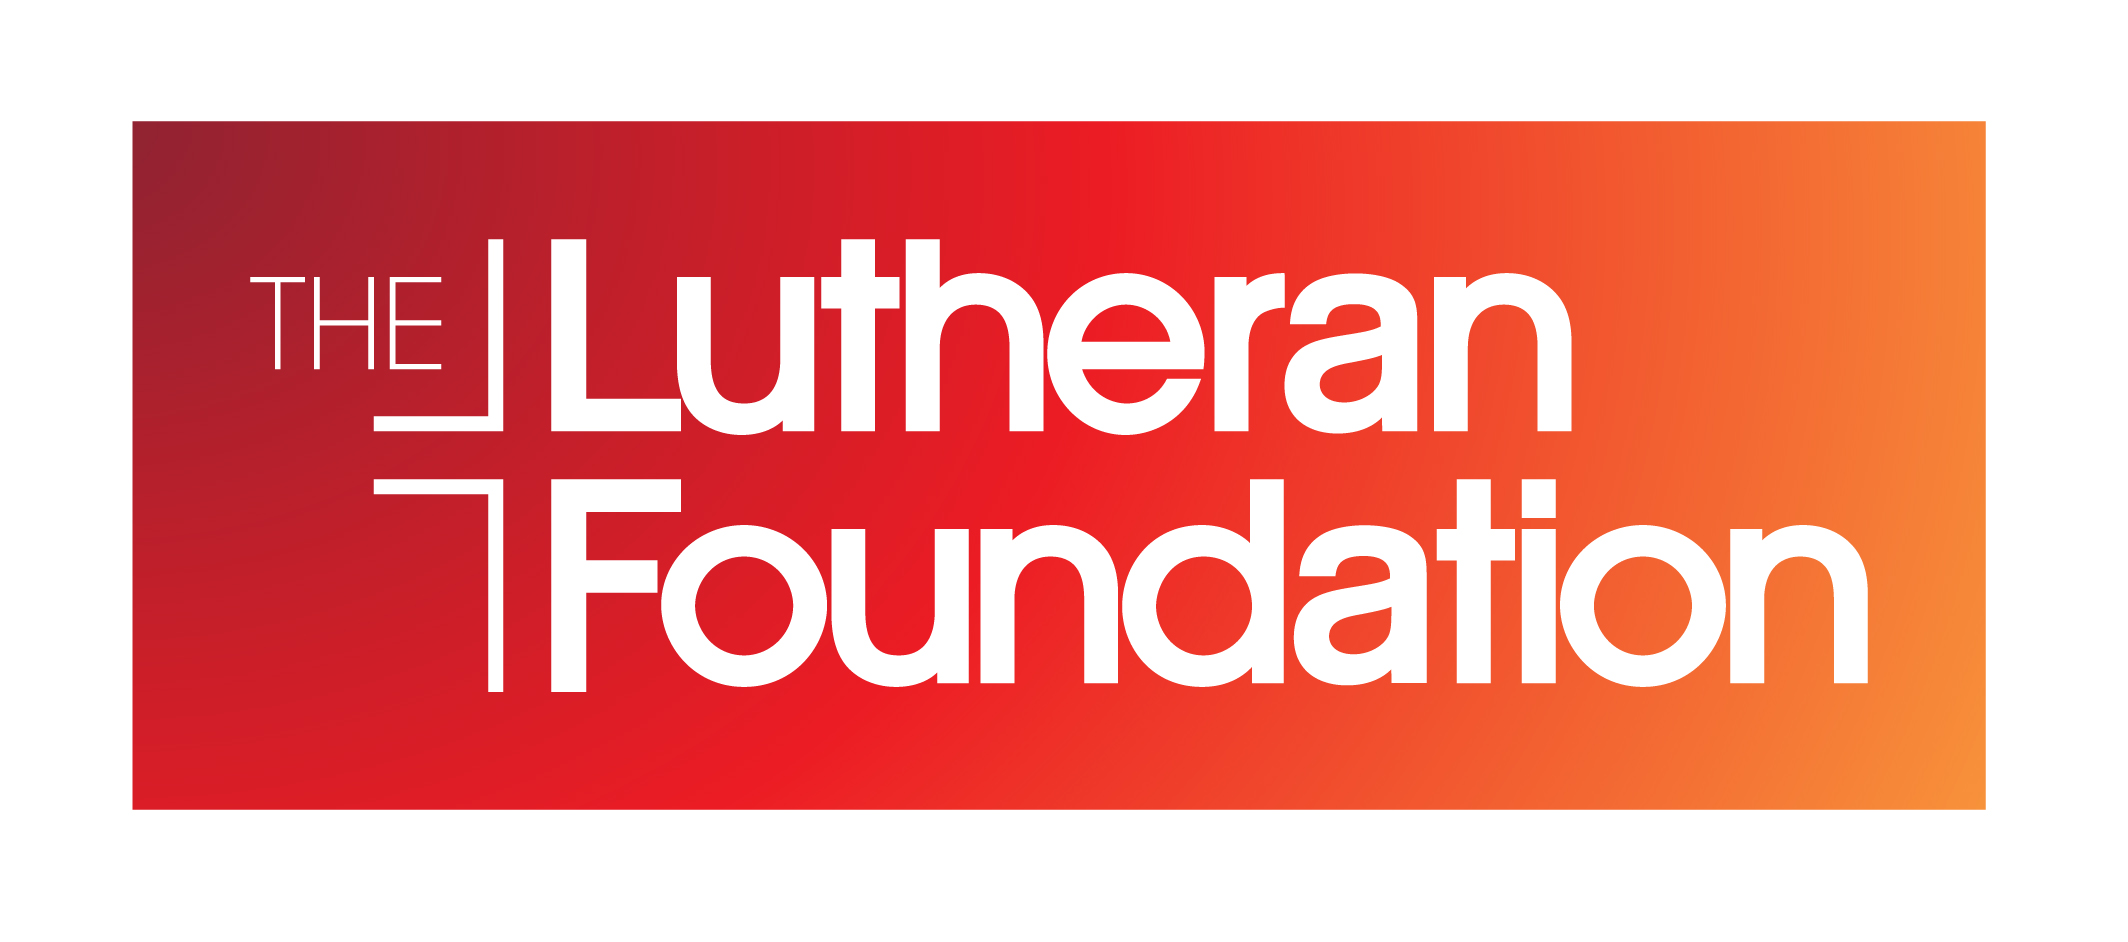 The_Lutheran_Foundation_Logo